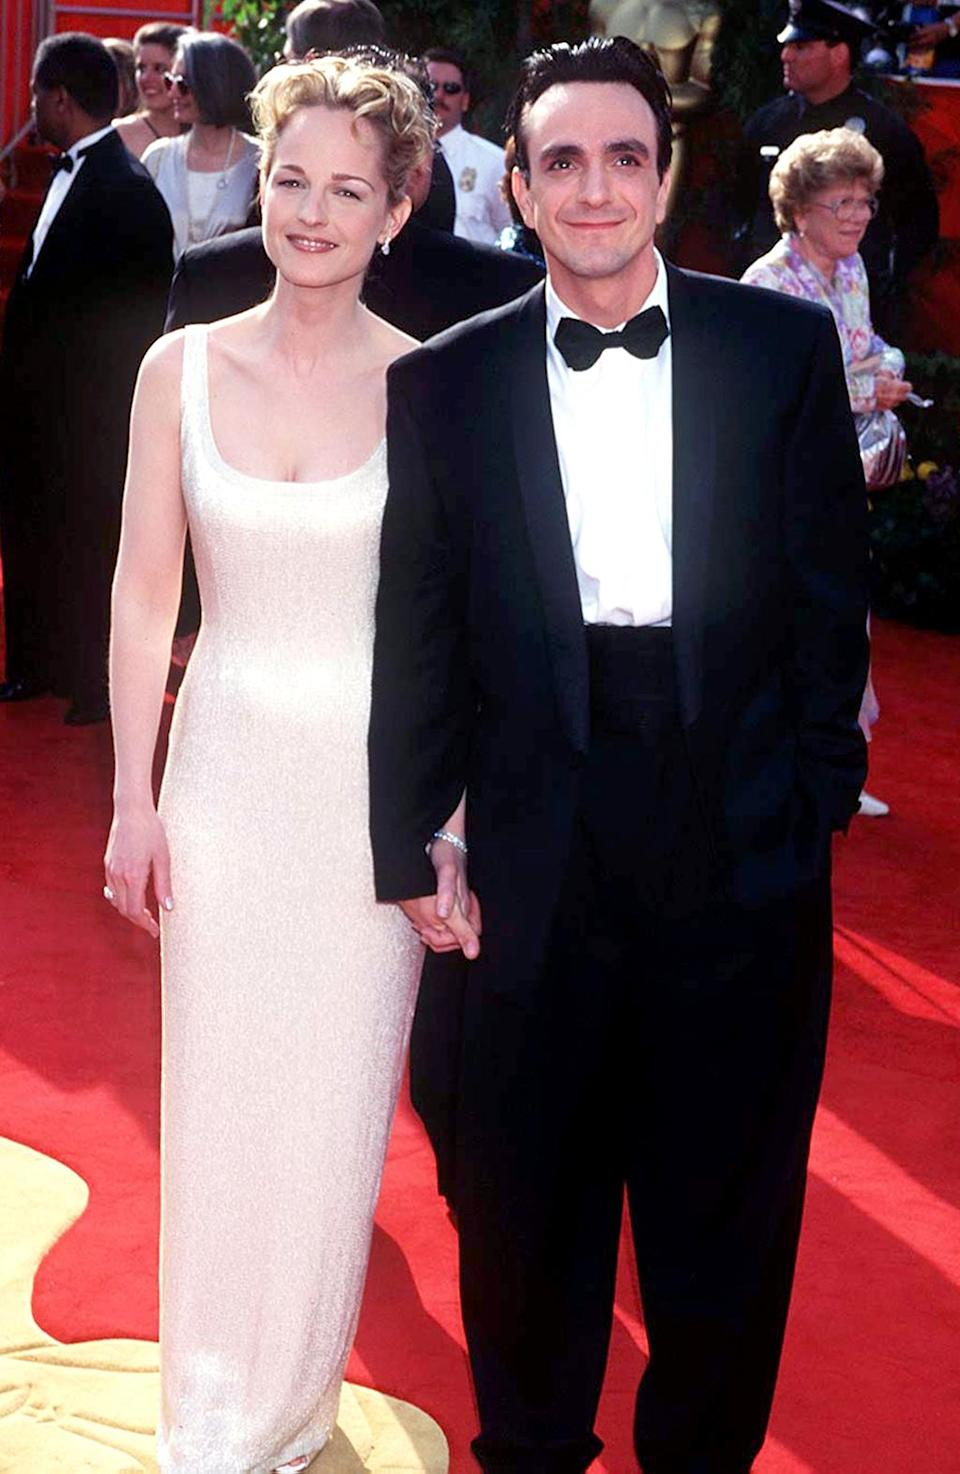 <p>Hunt, with then-boyfriend Azaria, was a presenter at the award show. The following year she would win her first Oscar for 'As Good as It Gets.' (Photo: Magma Agency/WireImage) </p>